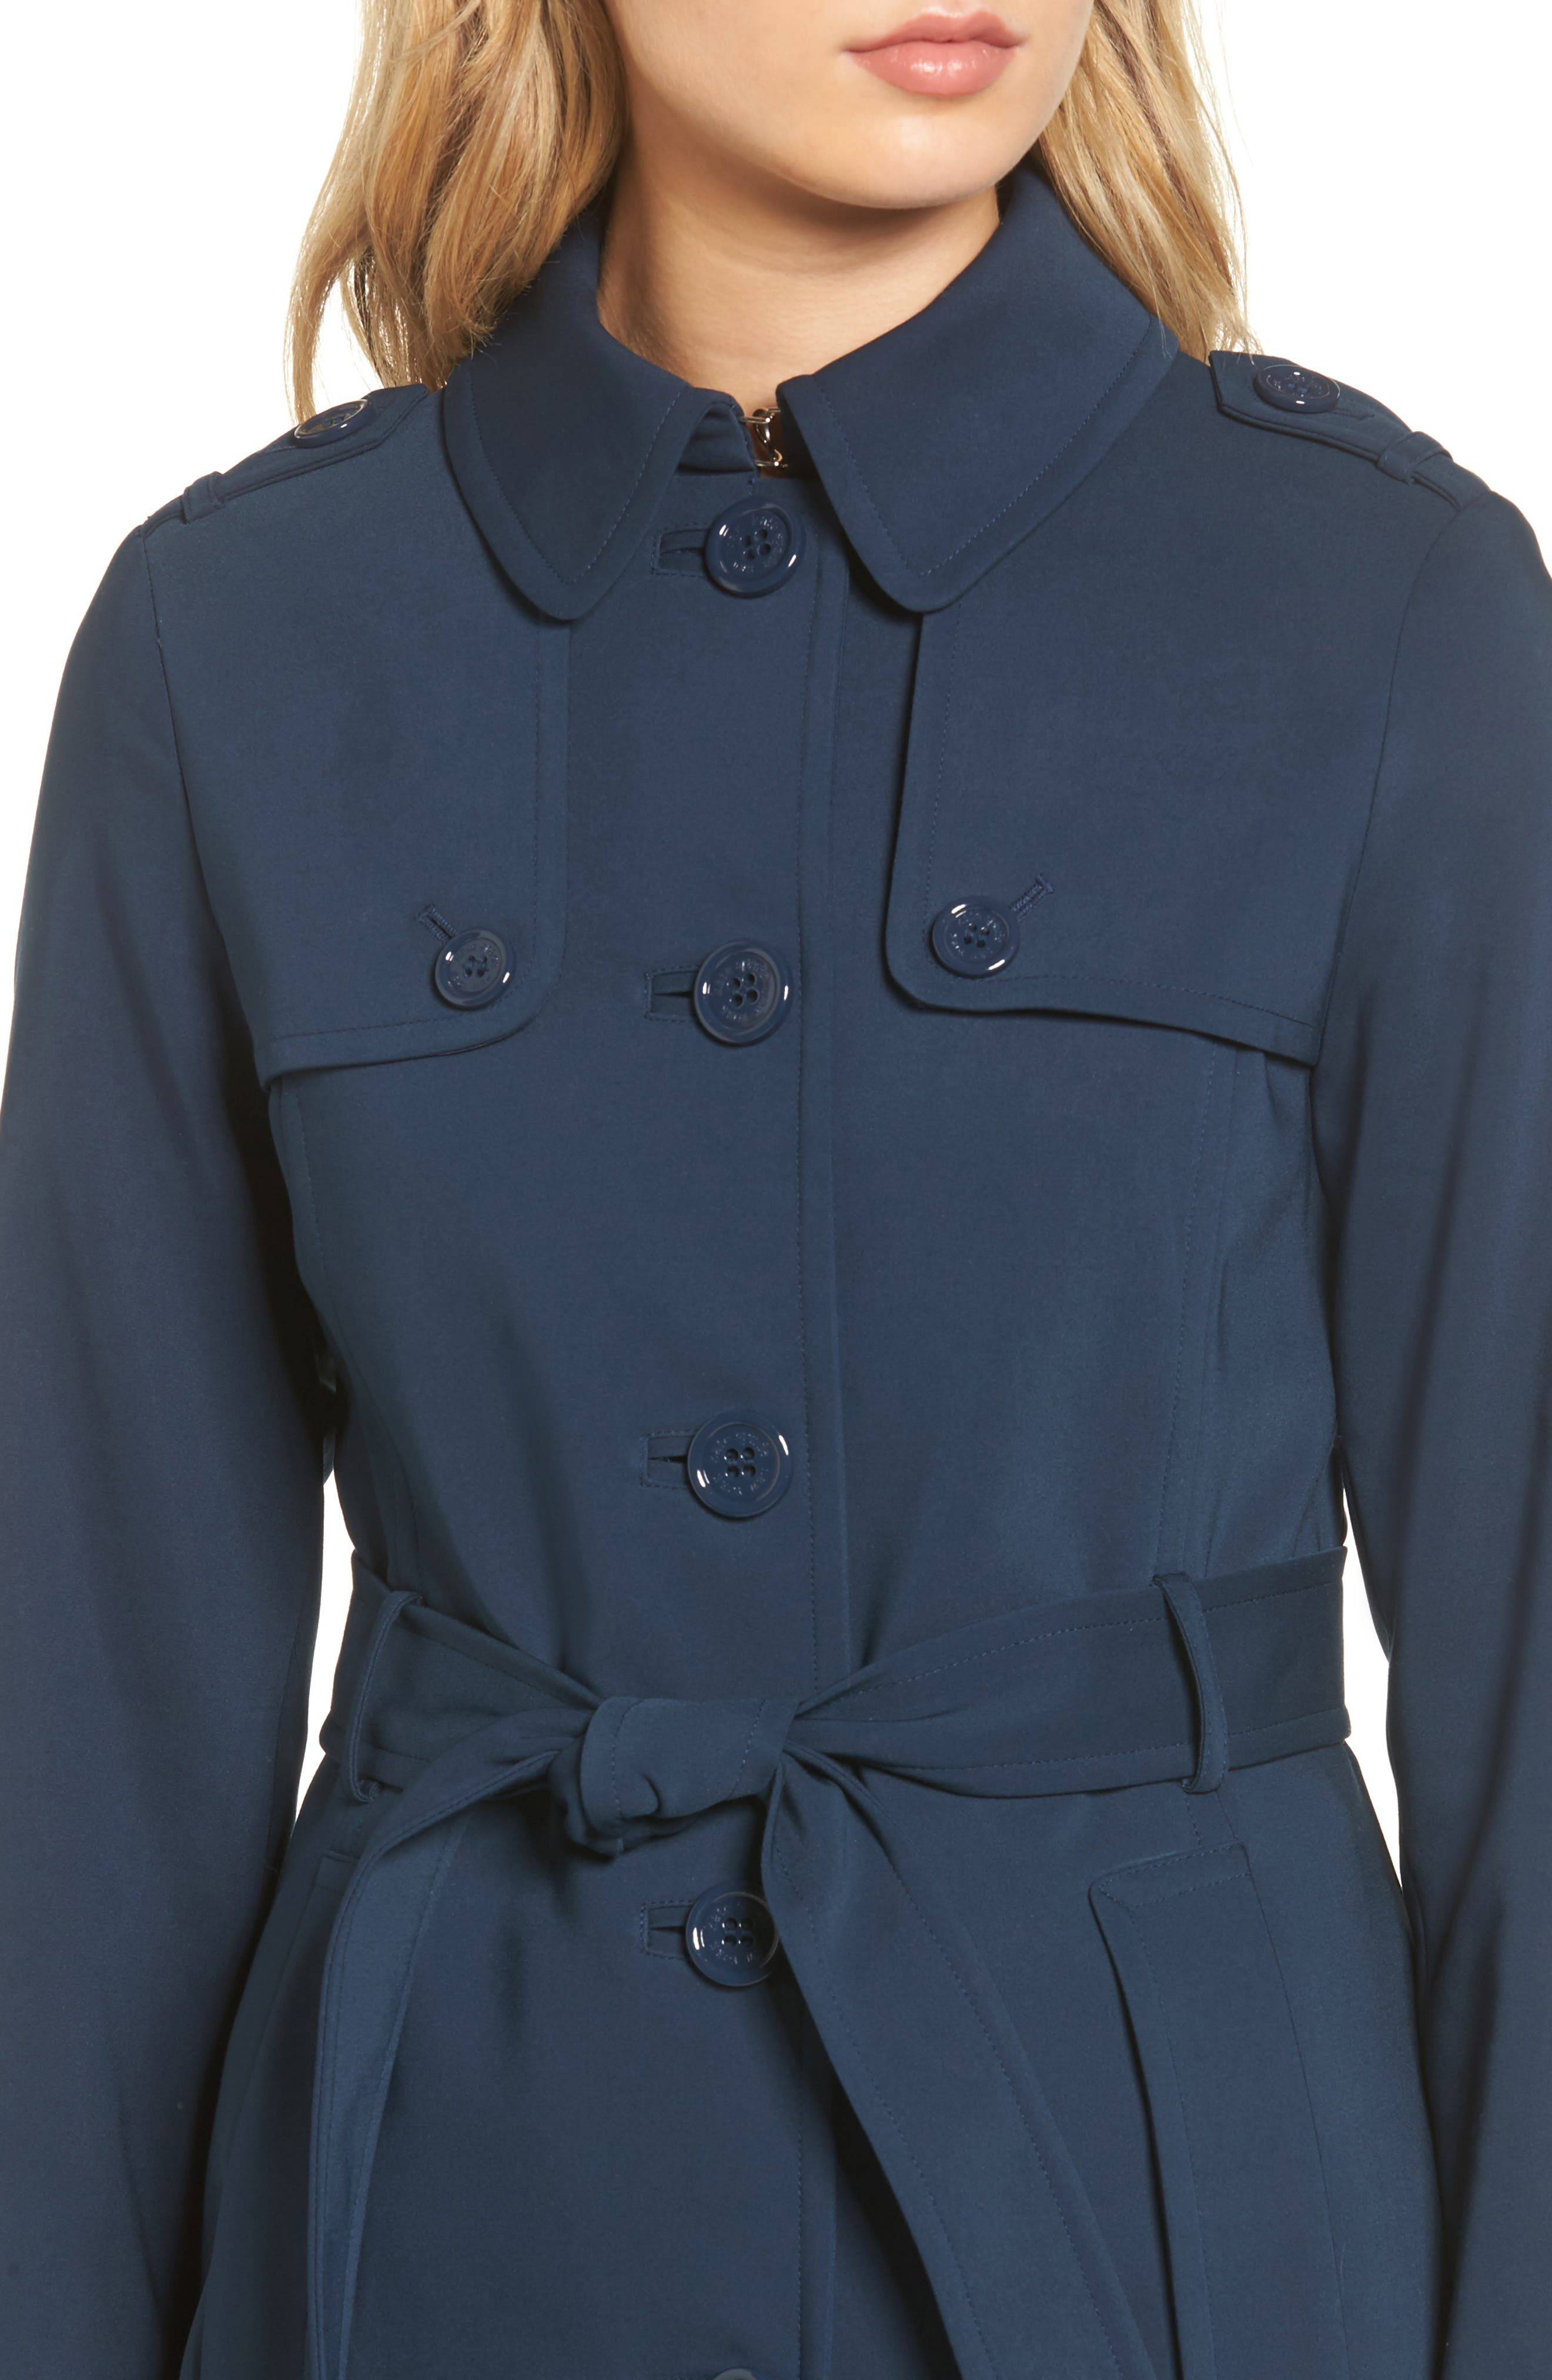 3-in-1 trench coat,                             Alternate thumbnail 4, color,                             Rich Navy